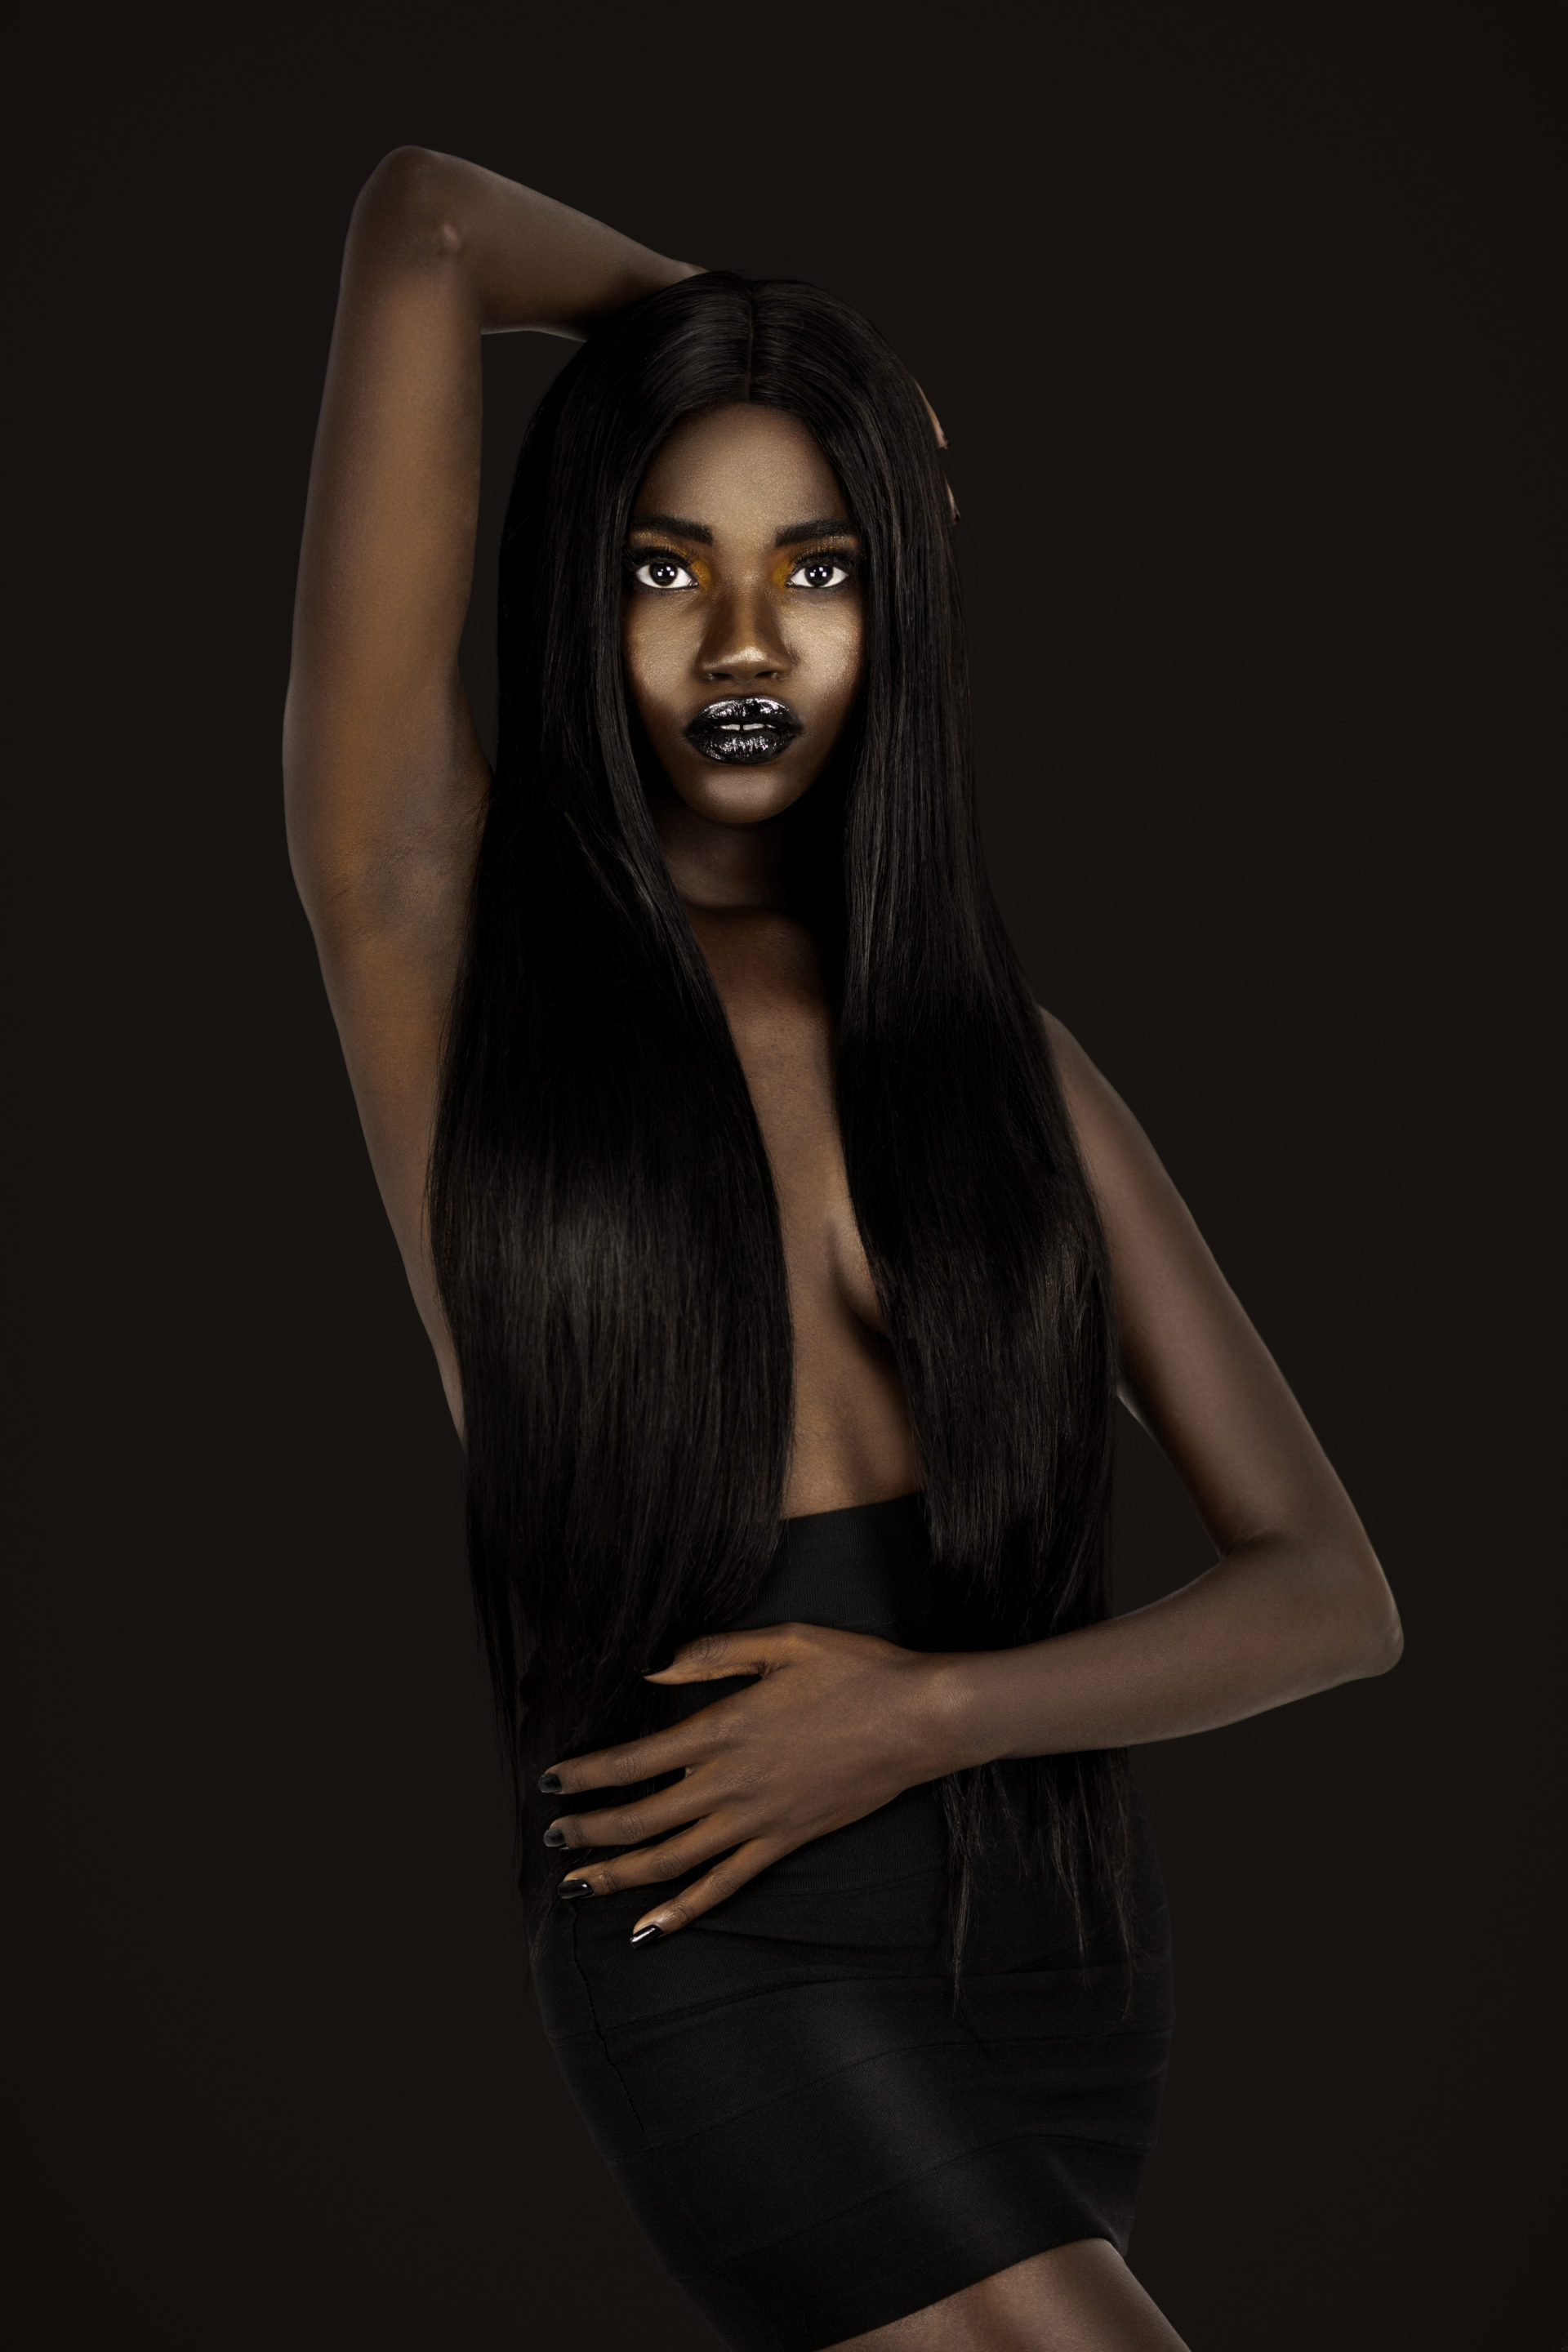 Clean & Serene Black Lady With Long Black Hair